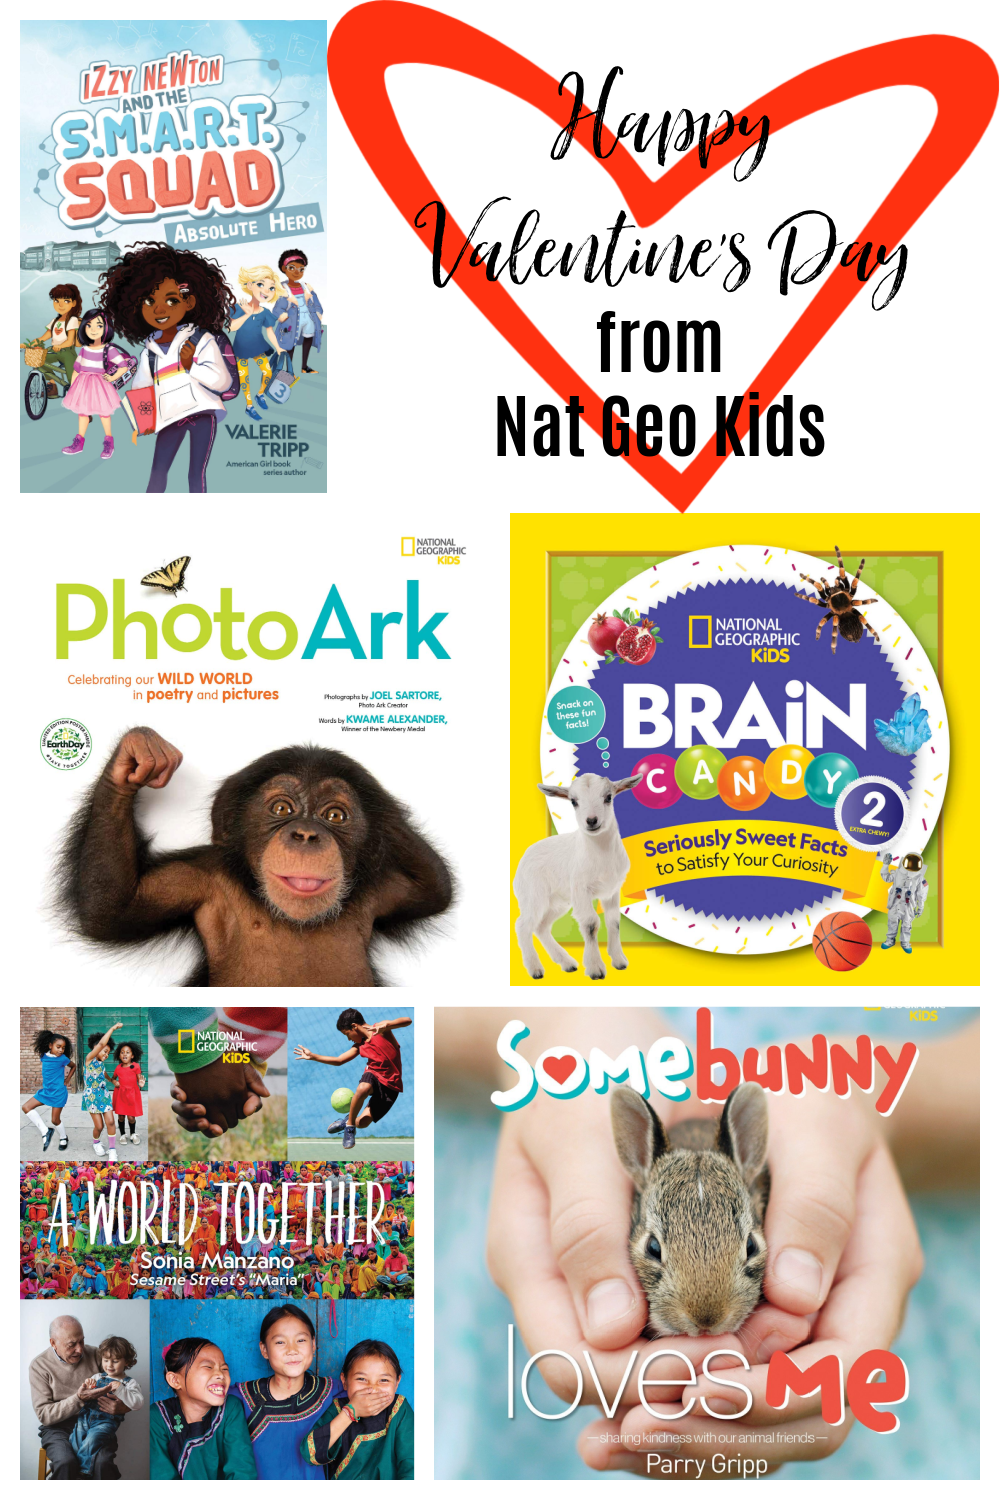 Happy Valentine's Day from Nat Geo Kids Books Giveaway